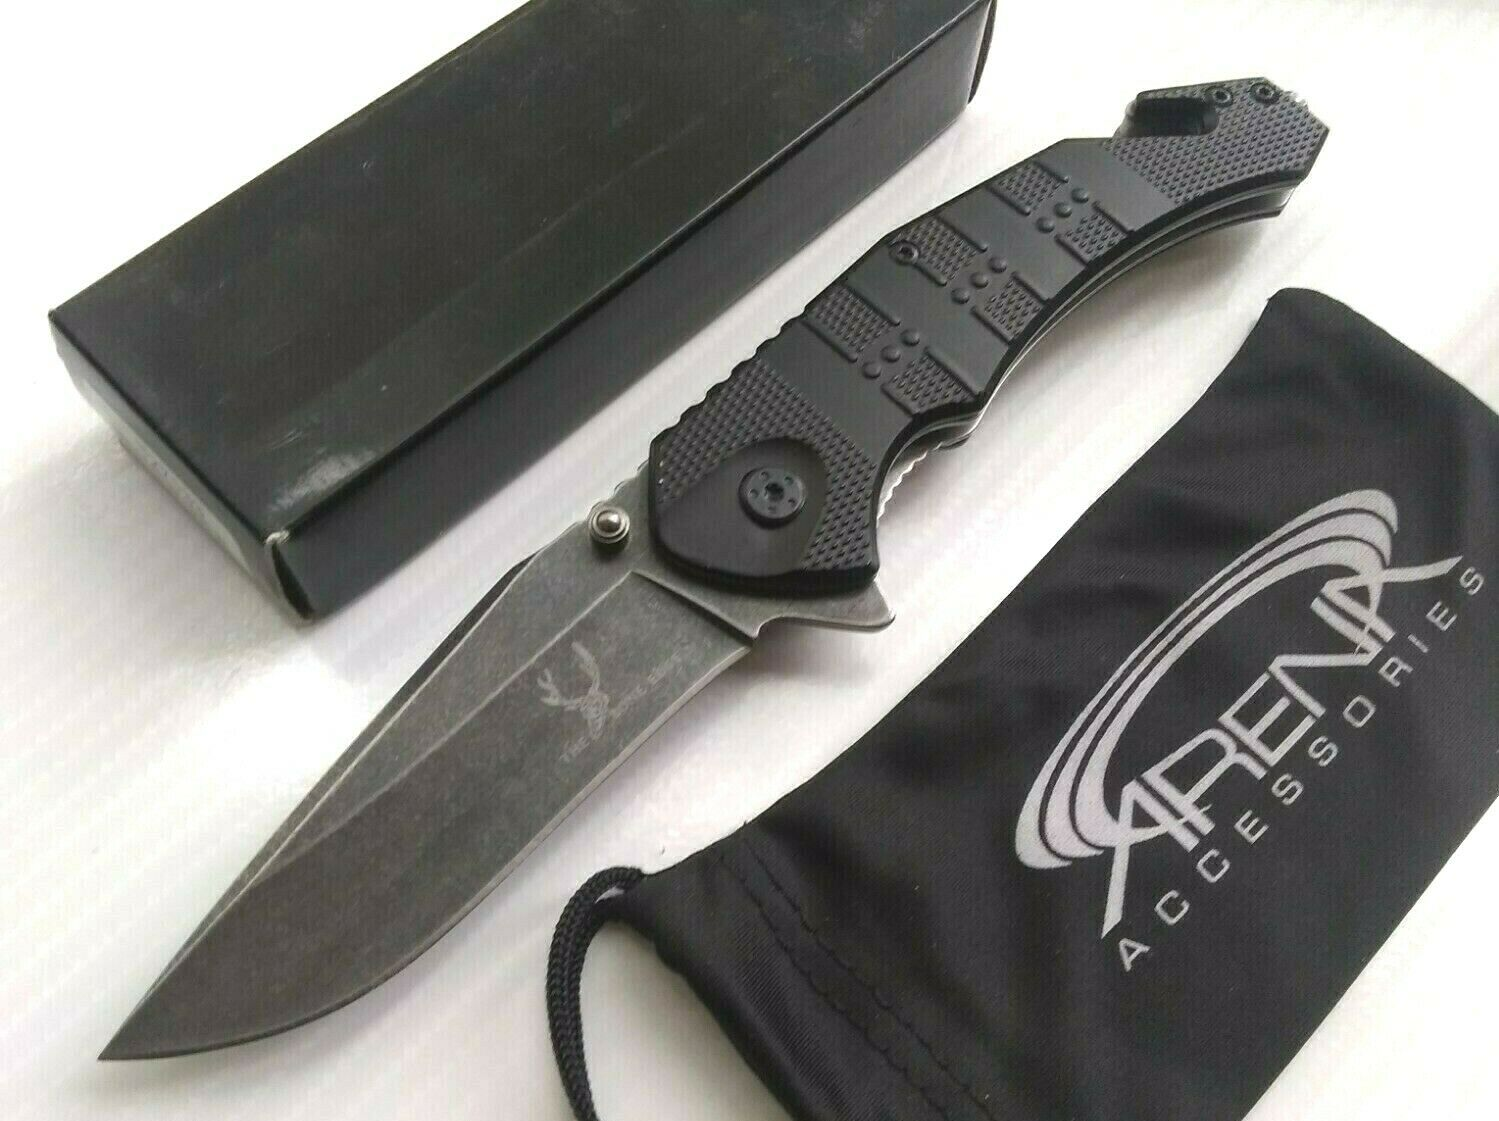 The Bone Edge All-Metal Slim Spring Assisted Flipper Pocket Knife Rescue Glass Breaker Stonewashed Blade